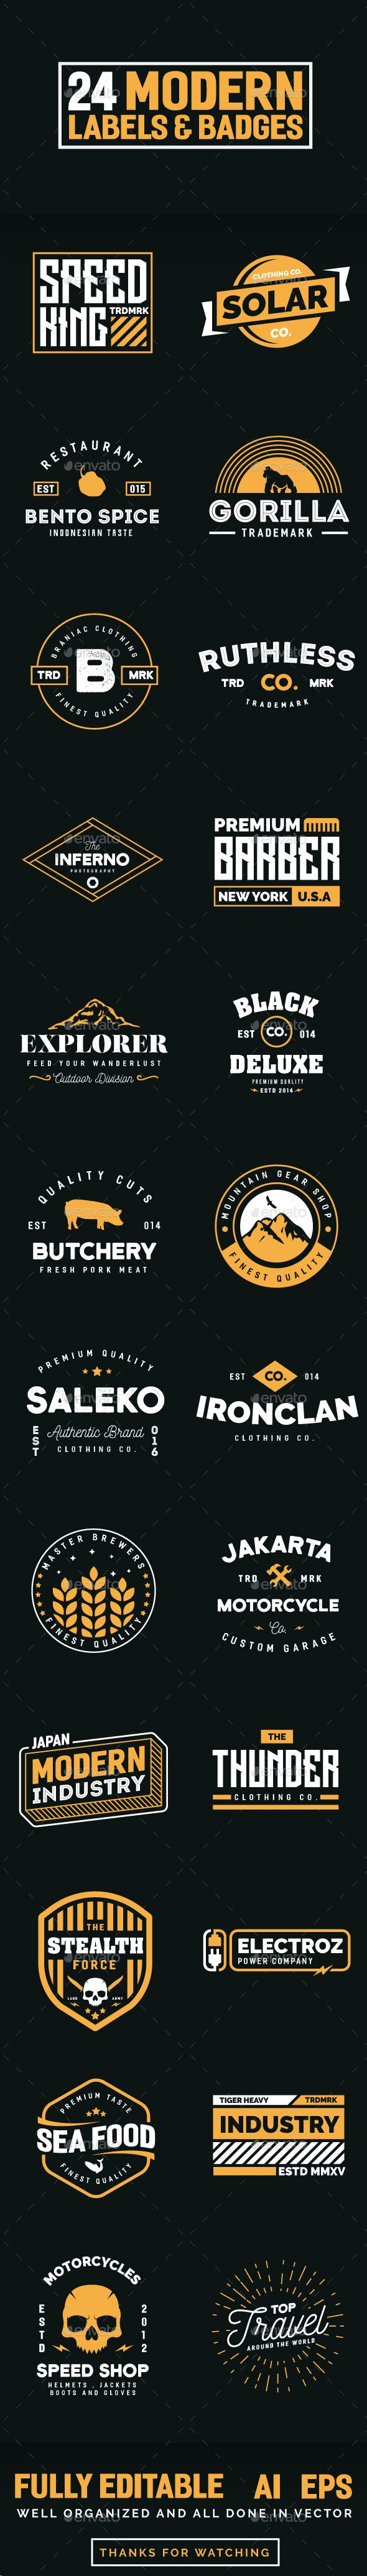 24 Modern Label and Badges Template Vector EPS, AI Illustrator